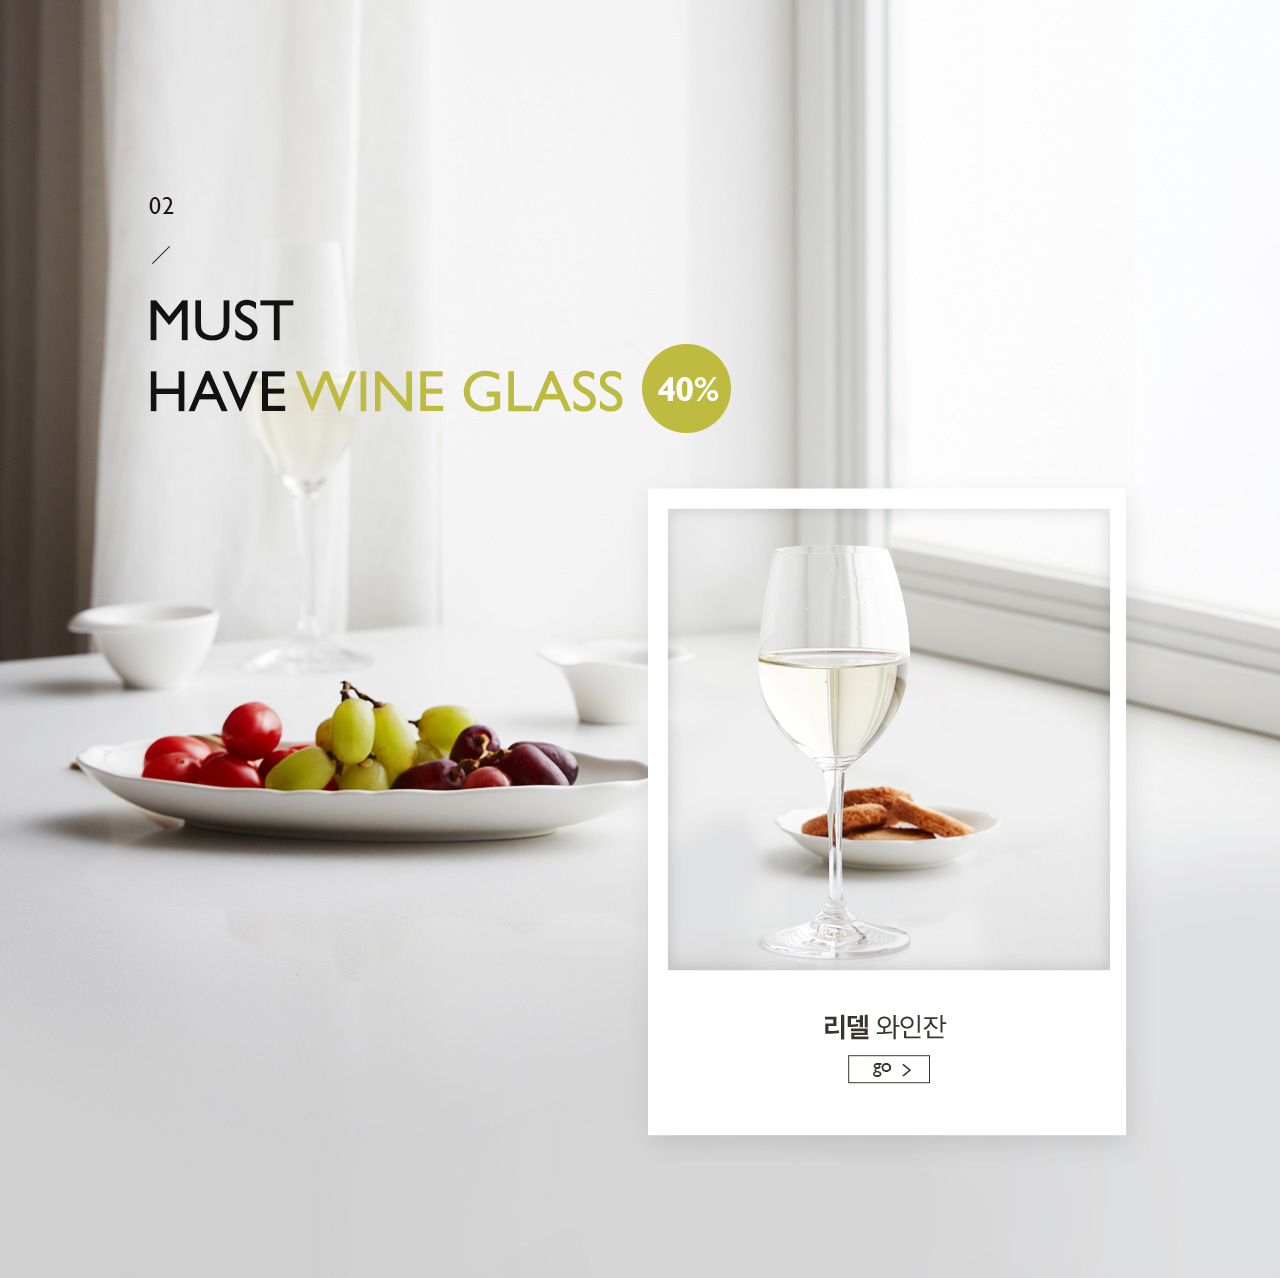 MUST HAVE WINE GLASS 40%